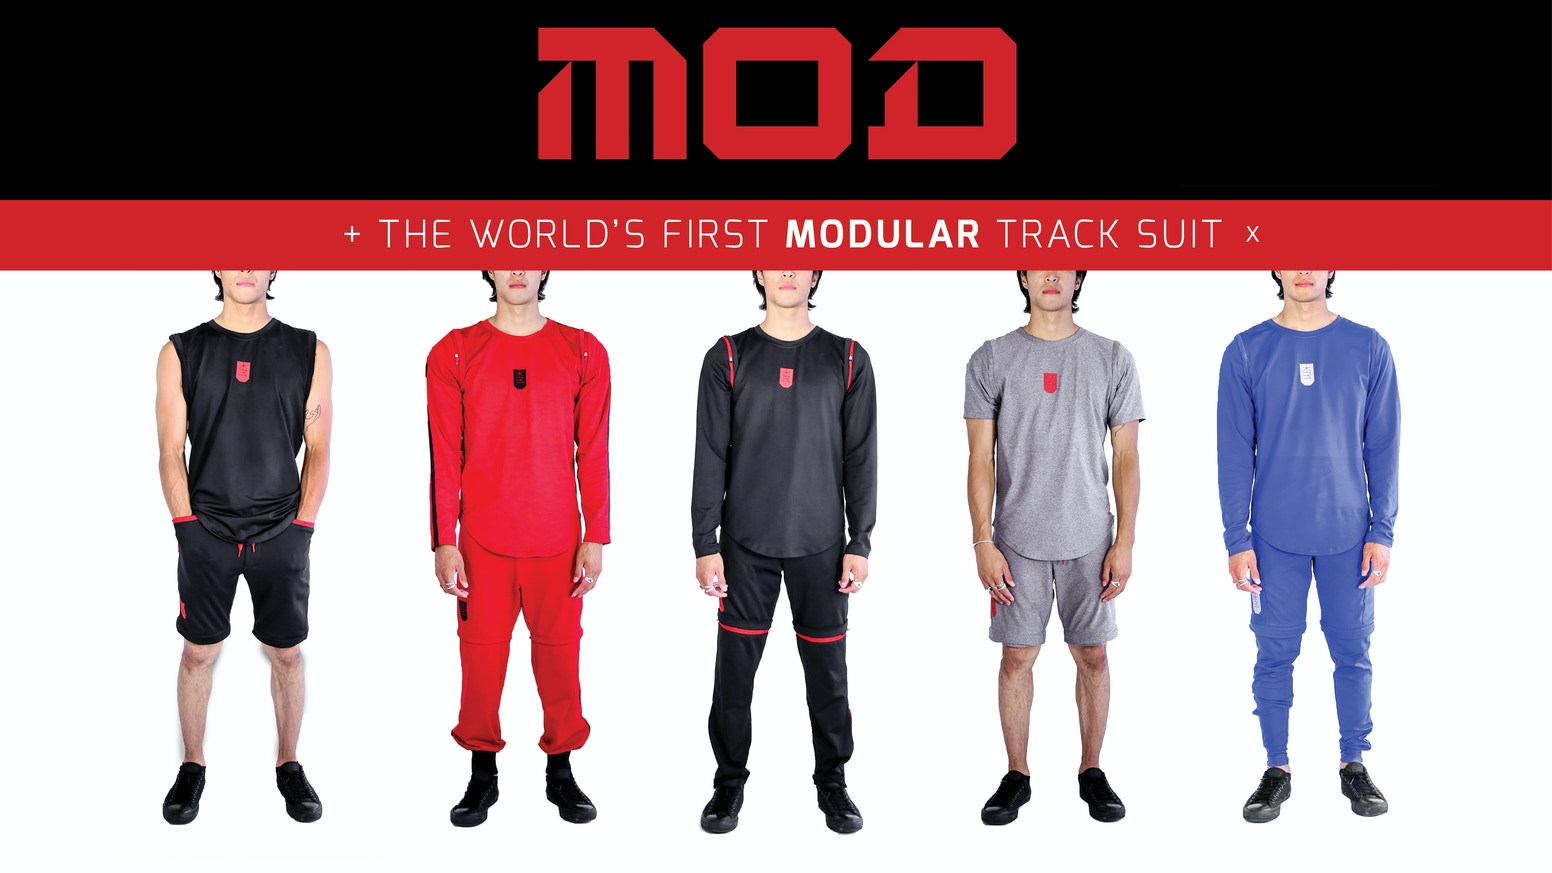 MOD is an award-winning modular clothing system that brings adaptability and convertibility like never before.